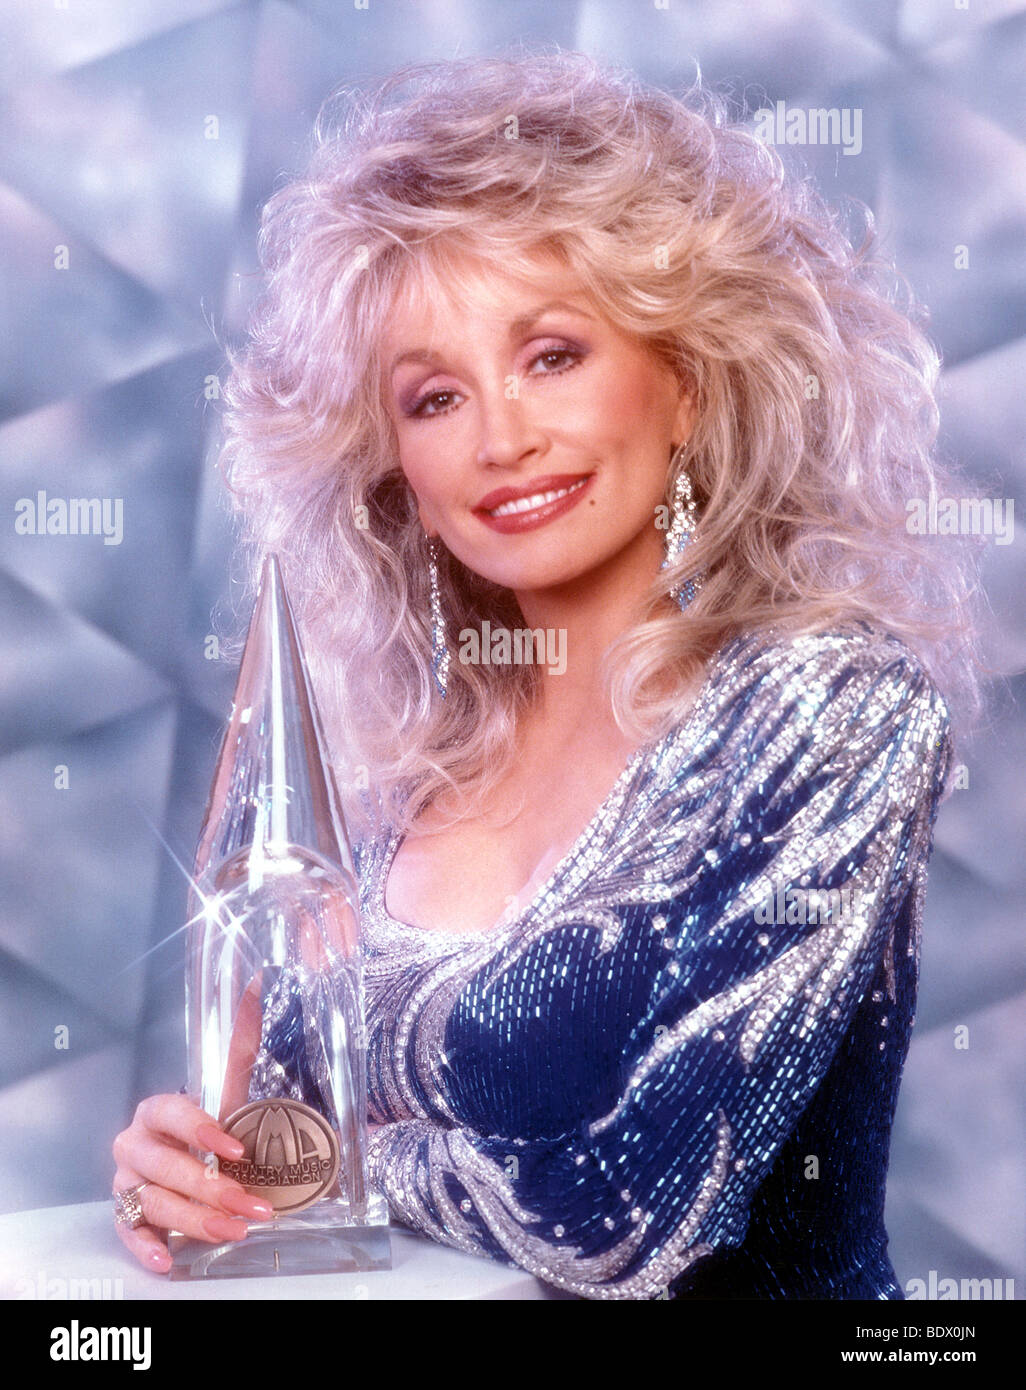 DOLLY PARTON - US Country and Western musician - Stock Image